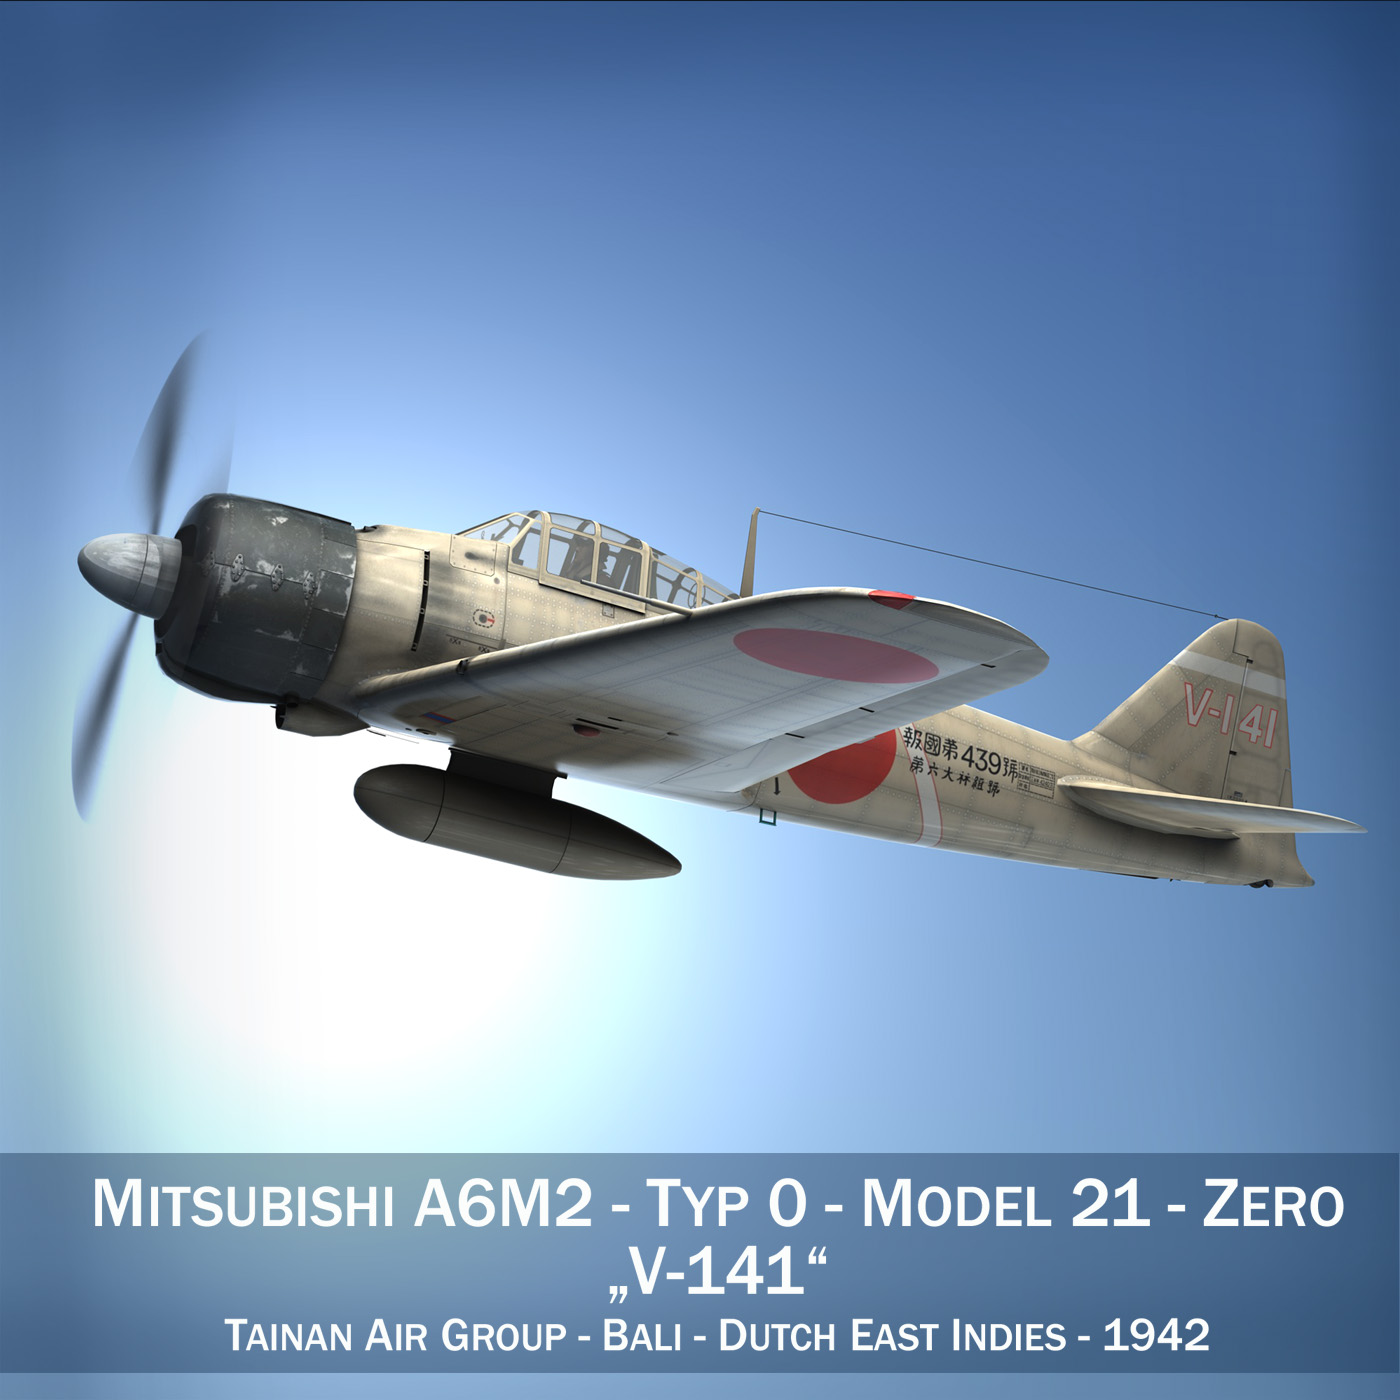 mitsubishi a6m2 zero – tainan air group 3d model fbx lwo obj 272715